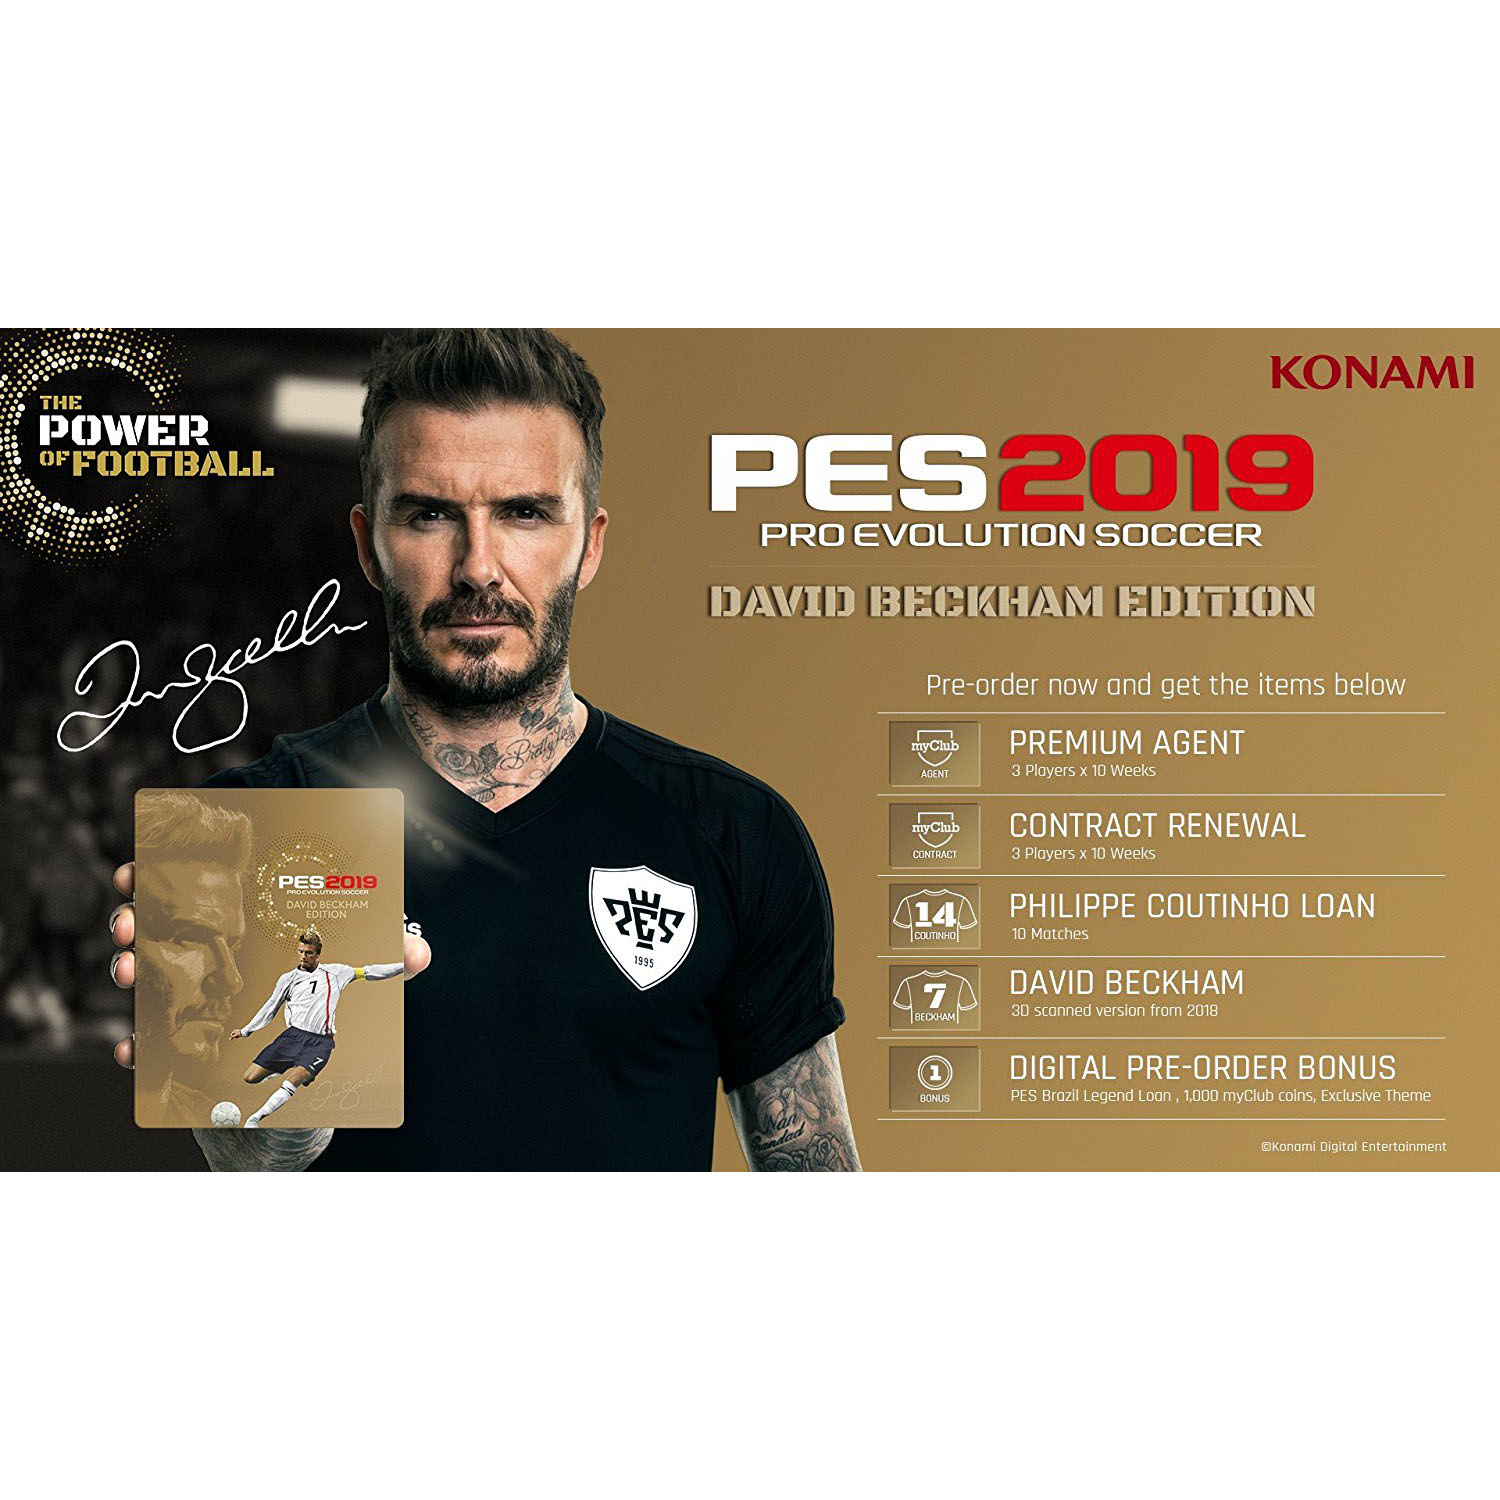 Pro Evo Soccer 2019: David Beckham Edition, Konami, PlayStation 4, 083717203377